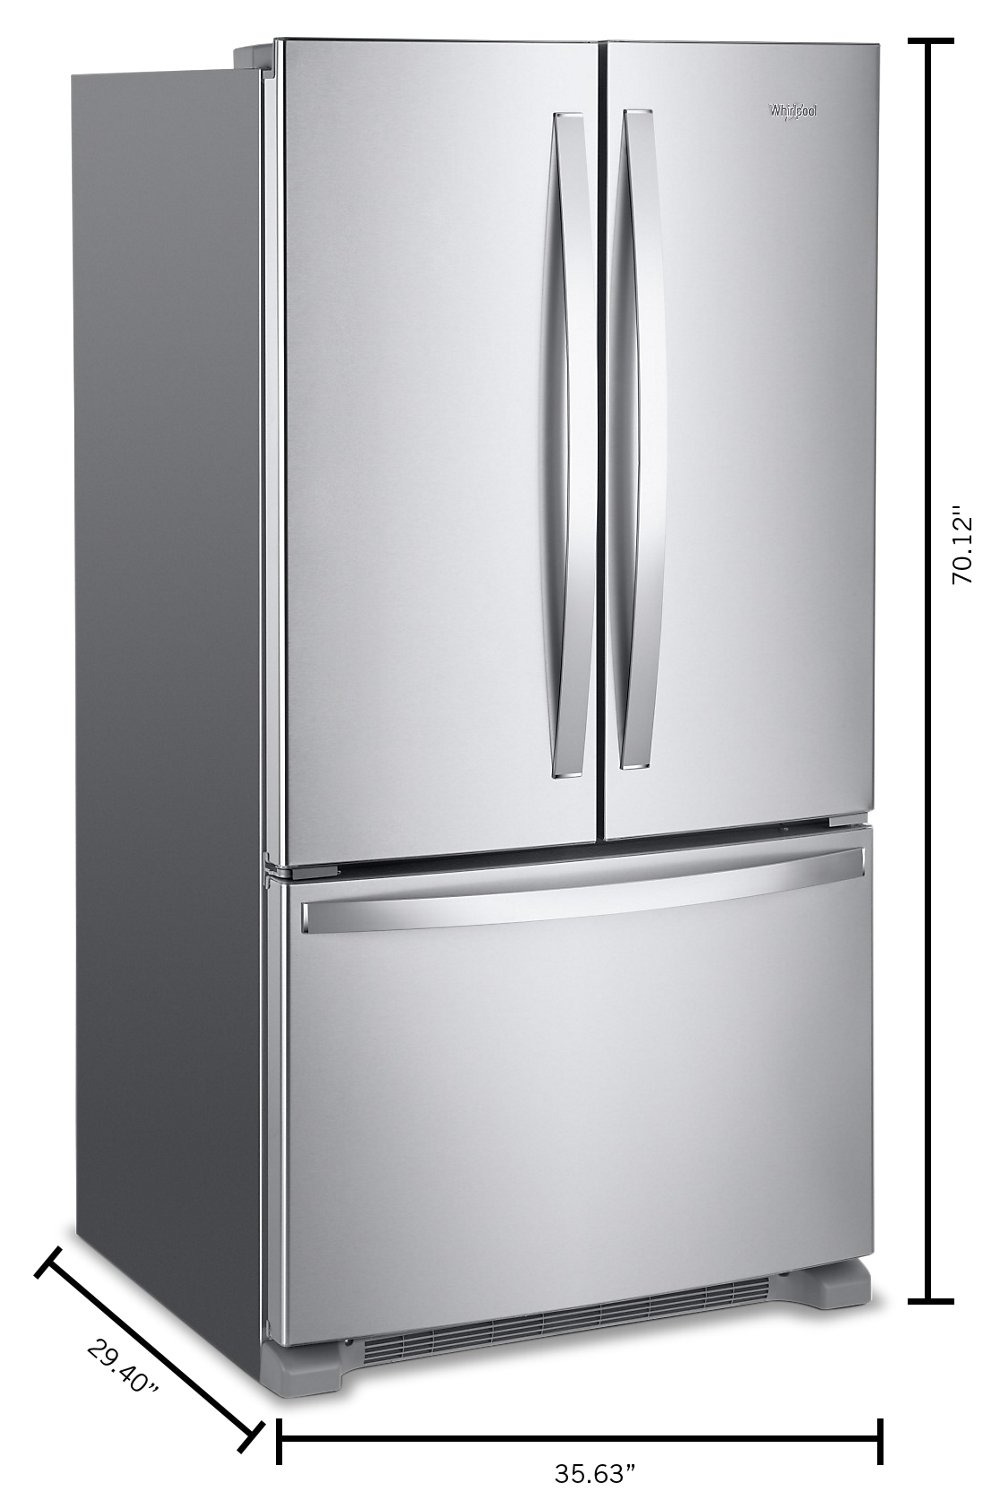 whirlpool 20 cu ft counter depth french door refrigerator wrf540cwhz